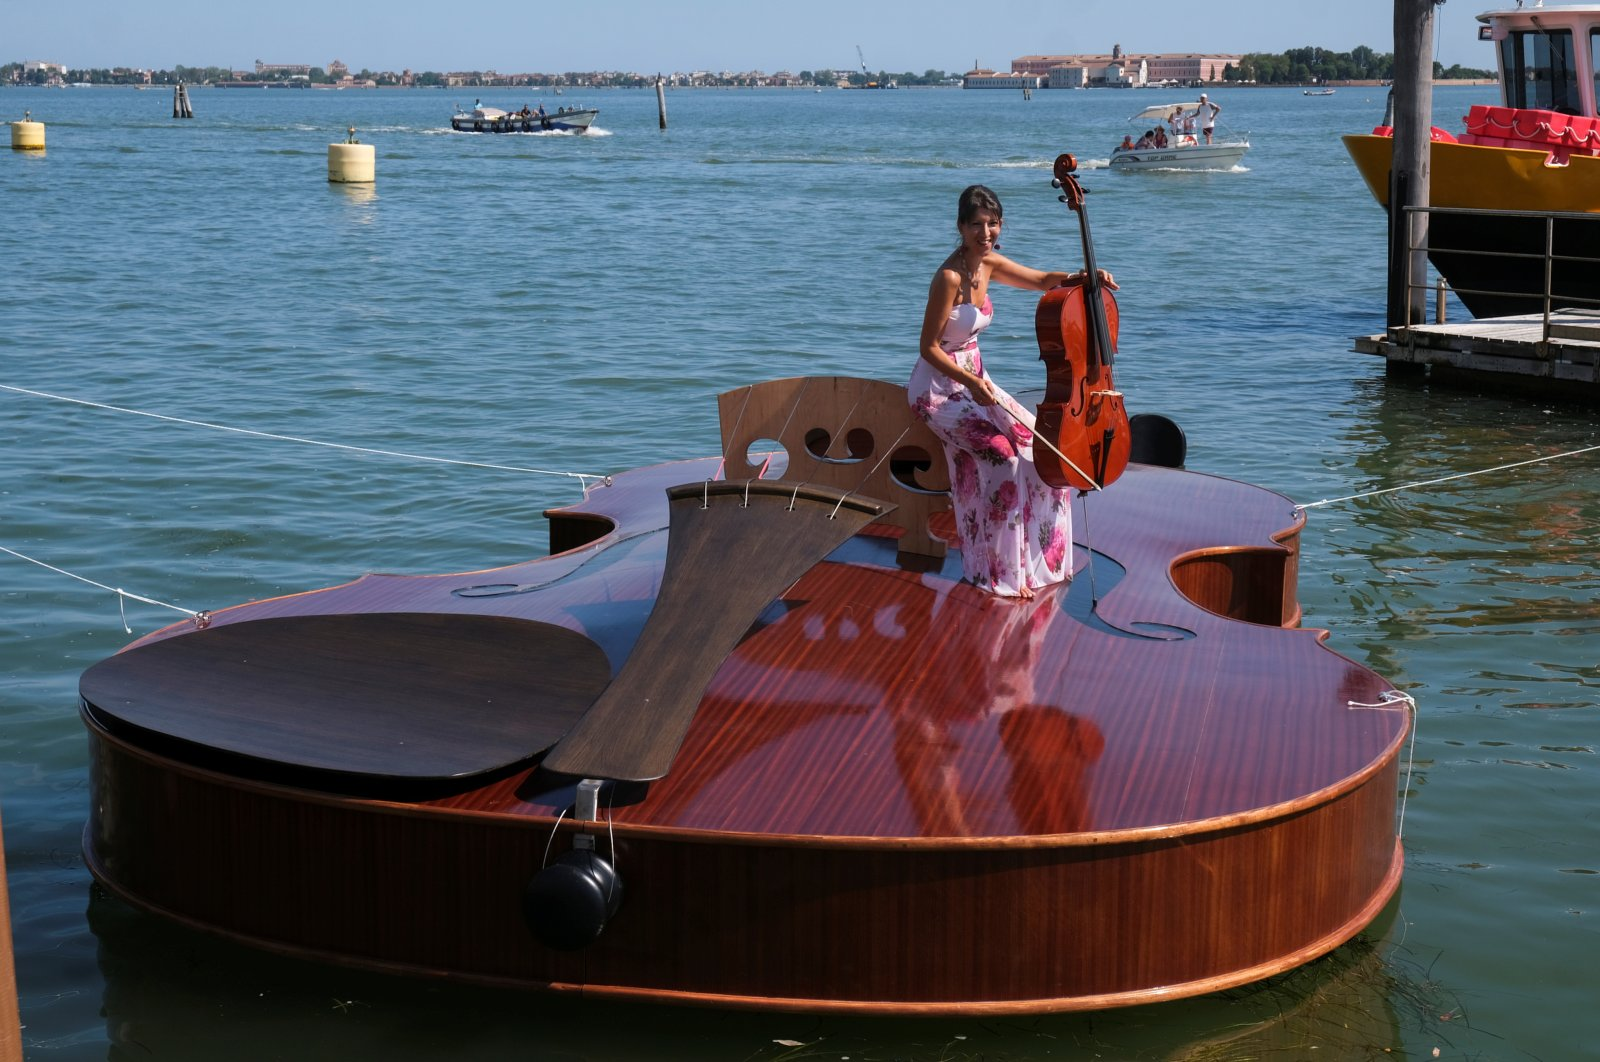 A musician plays cello on board a boat in the shape of a violin, titled 'Violin of Noah', that was built during the pandemic by artist Livio De Marchi in collaboration with Consorzio Venezia Sviluppo and is dedicated to people who have died from coronavirus, during a test-ride, in Venice, Italy, Aug. 6, 2021. (Reuters Photo)